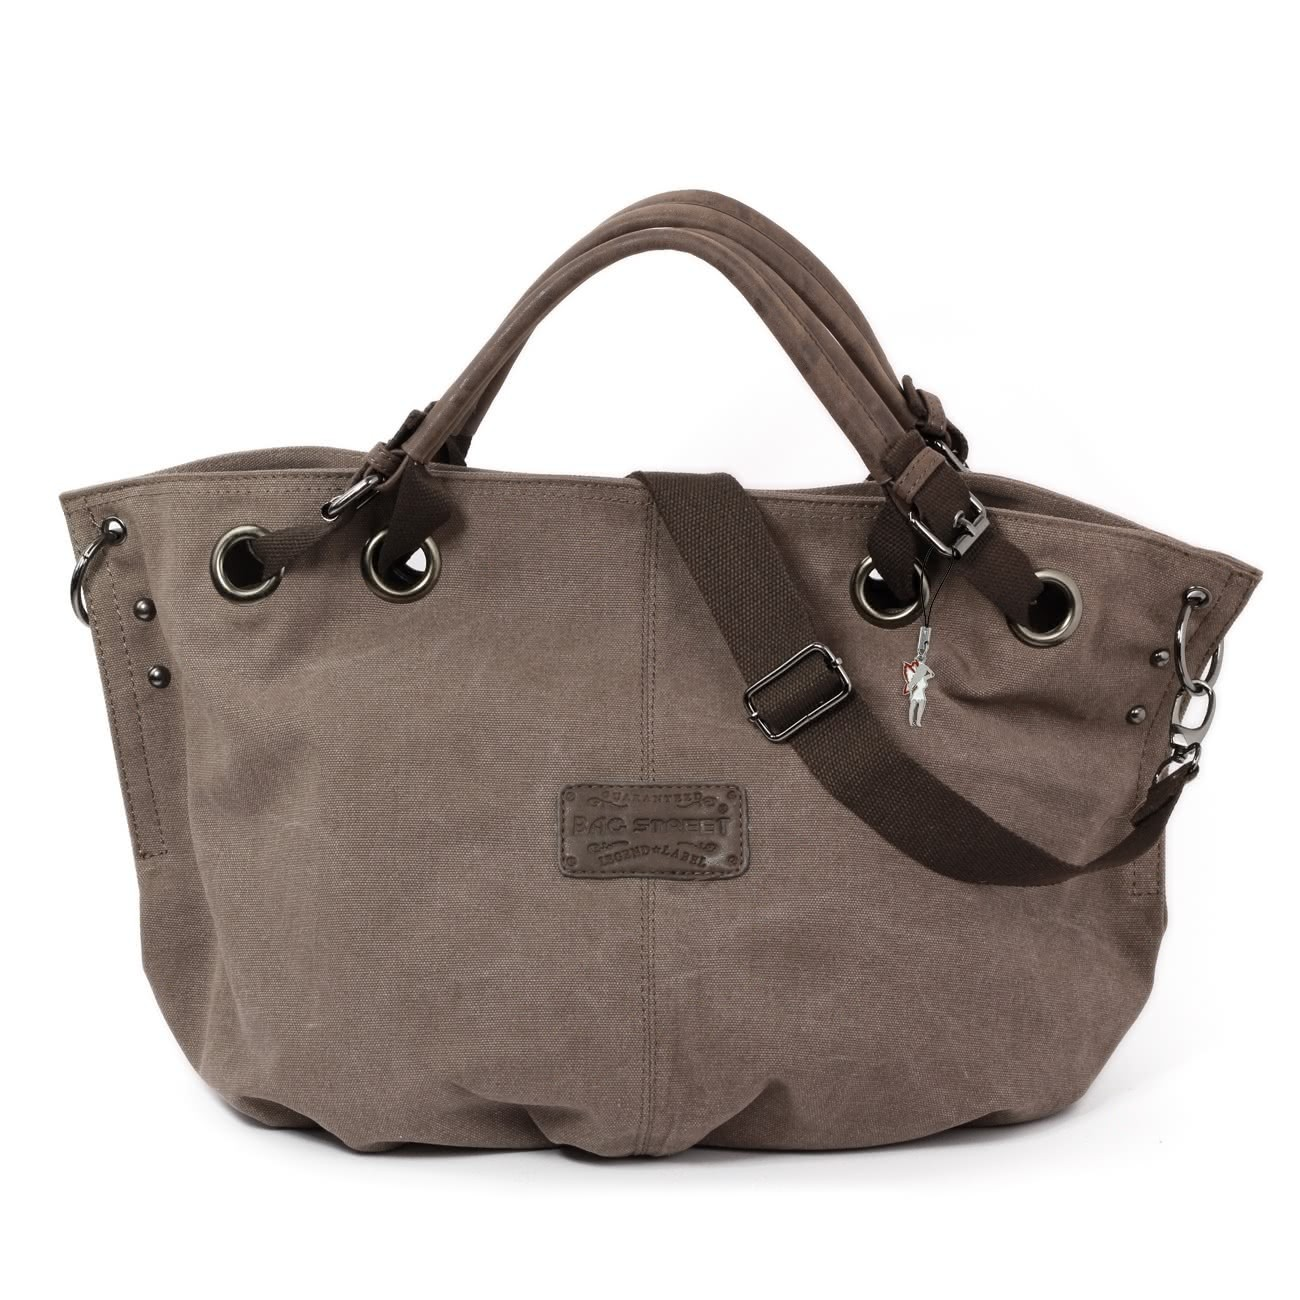 Beuteltasche Canvas braun Damen Hobo Shopper Handtasche Bag Street OTJ213N